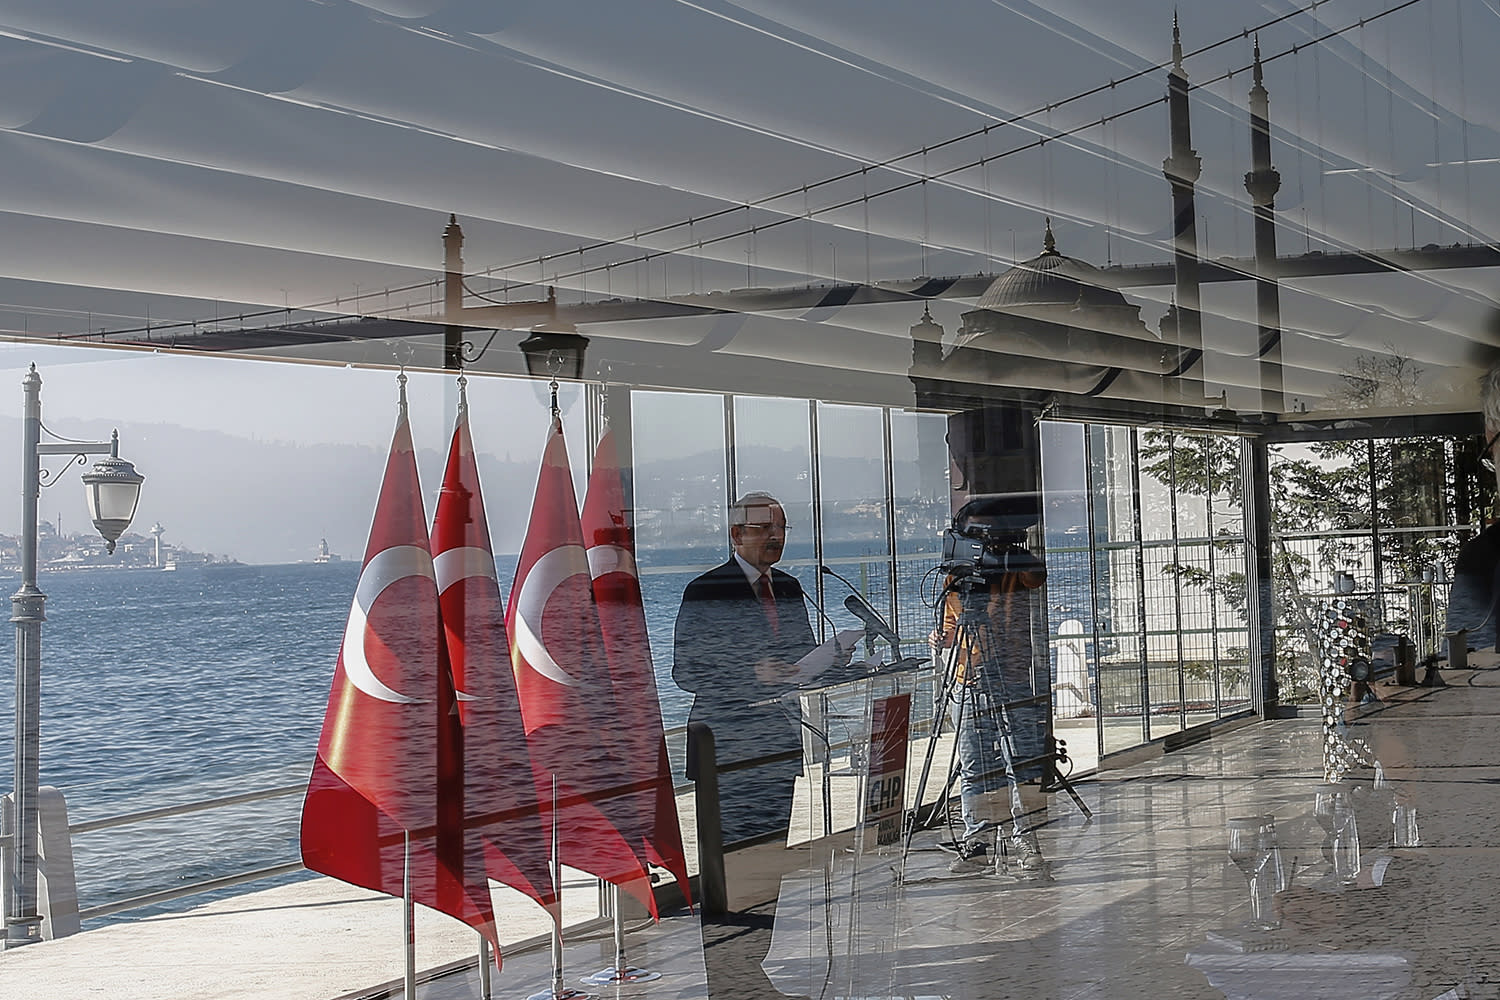 <p>Turkey's main opposition Republican People's Party leader Kemal Kilicdaroglu speaks during a press conference with the Bosporus in the background, in Istanbul, April 14, 2017. Turkey is heading to a contentious April 16 referendum on constitutional reforms to expand President Recep Tayyip Erdogan's powers. (Photo: Emrah Gurel/AP) </p>